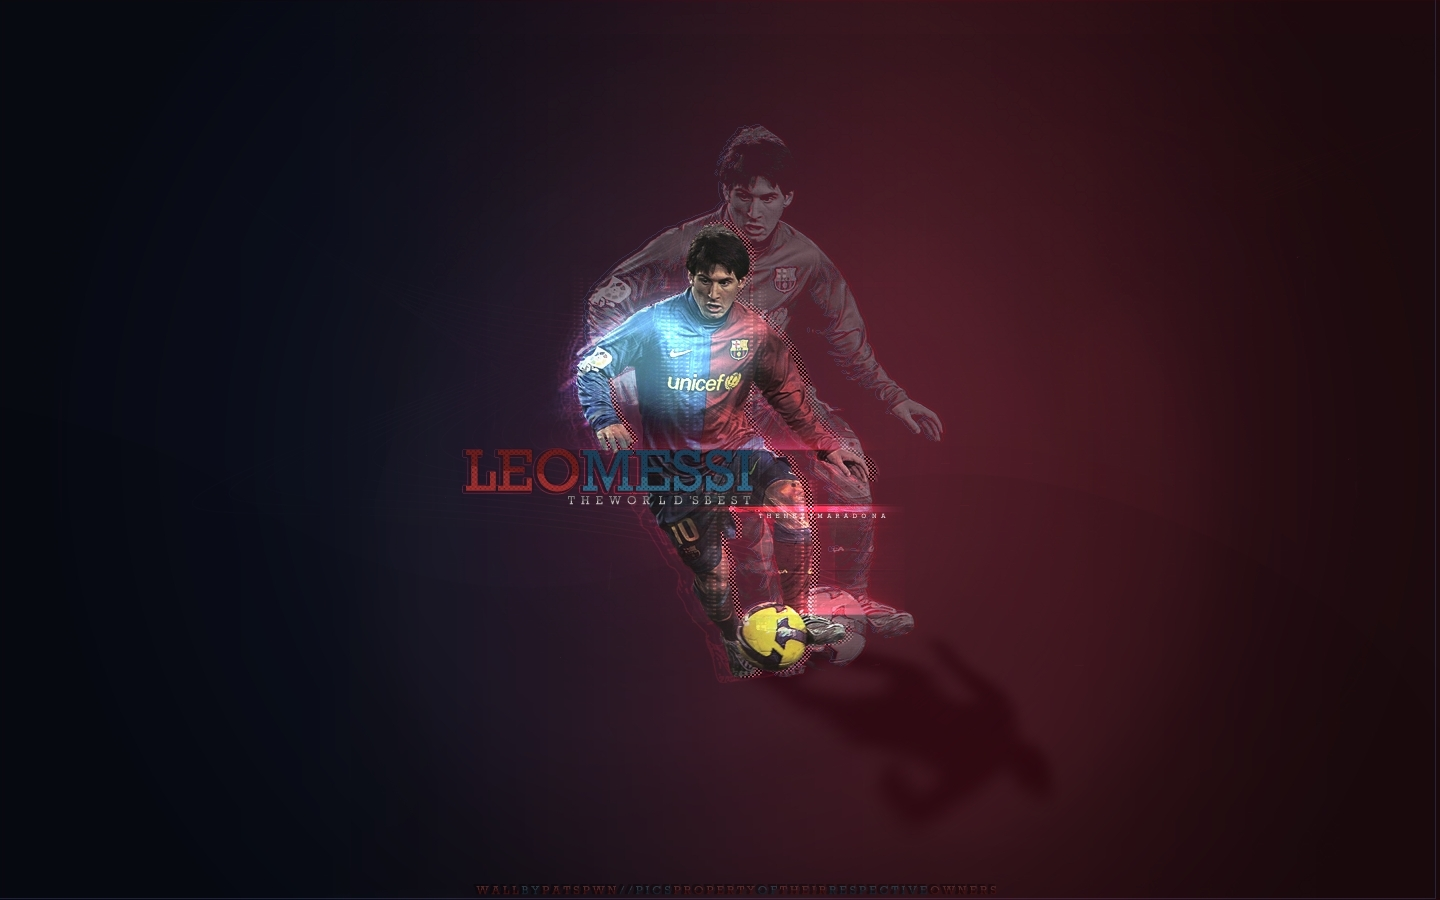 Image For Wallpaper Lionel Messi Wallpapers